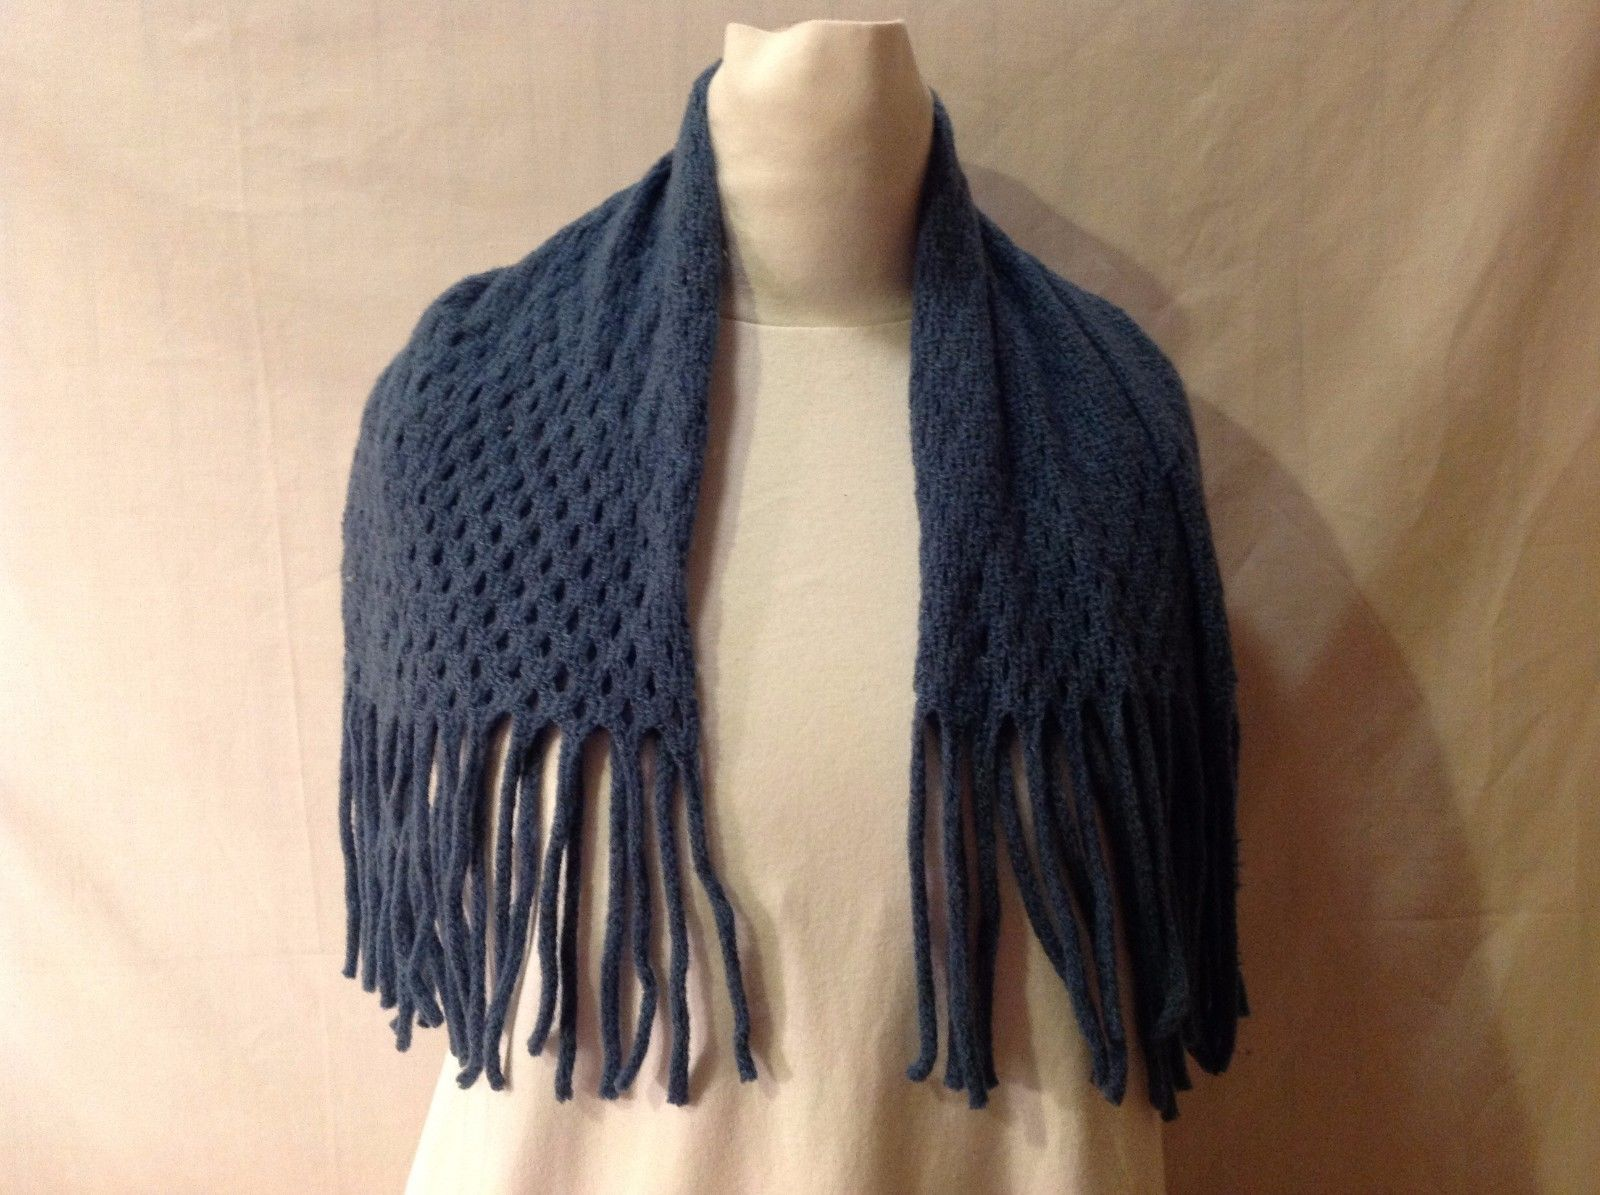 Warm Fashionable NWT New With Tags Wool Infinity Dickie Scarf Gray Blue Dark